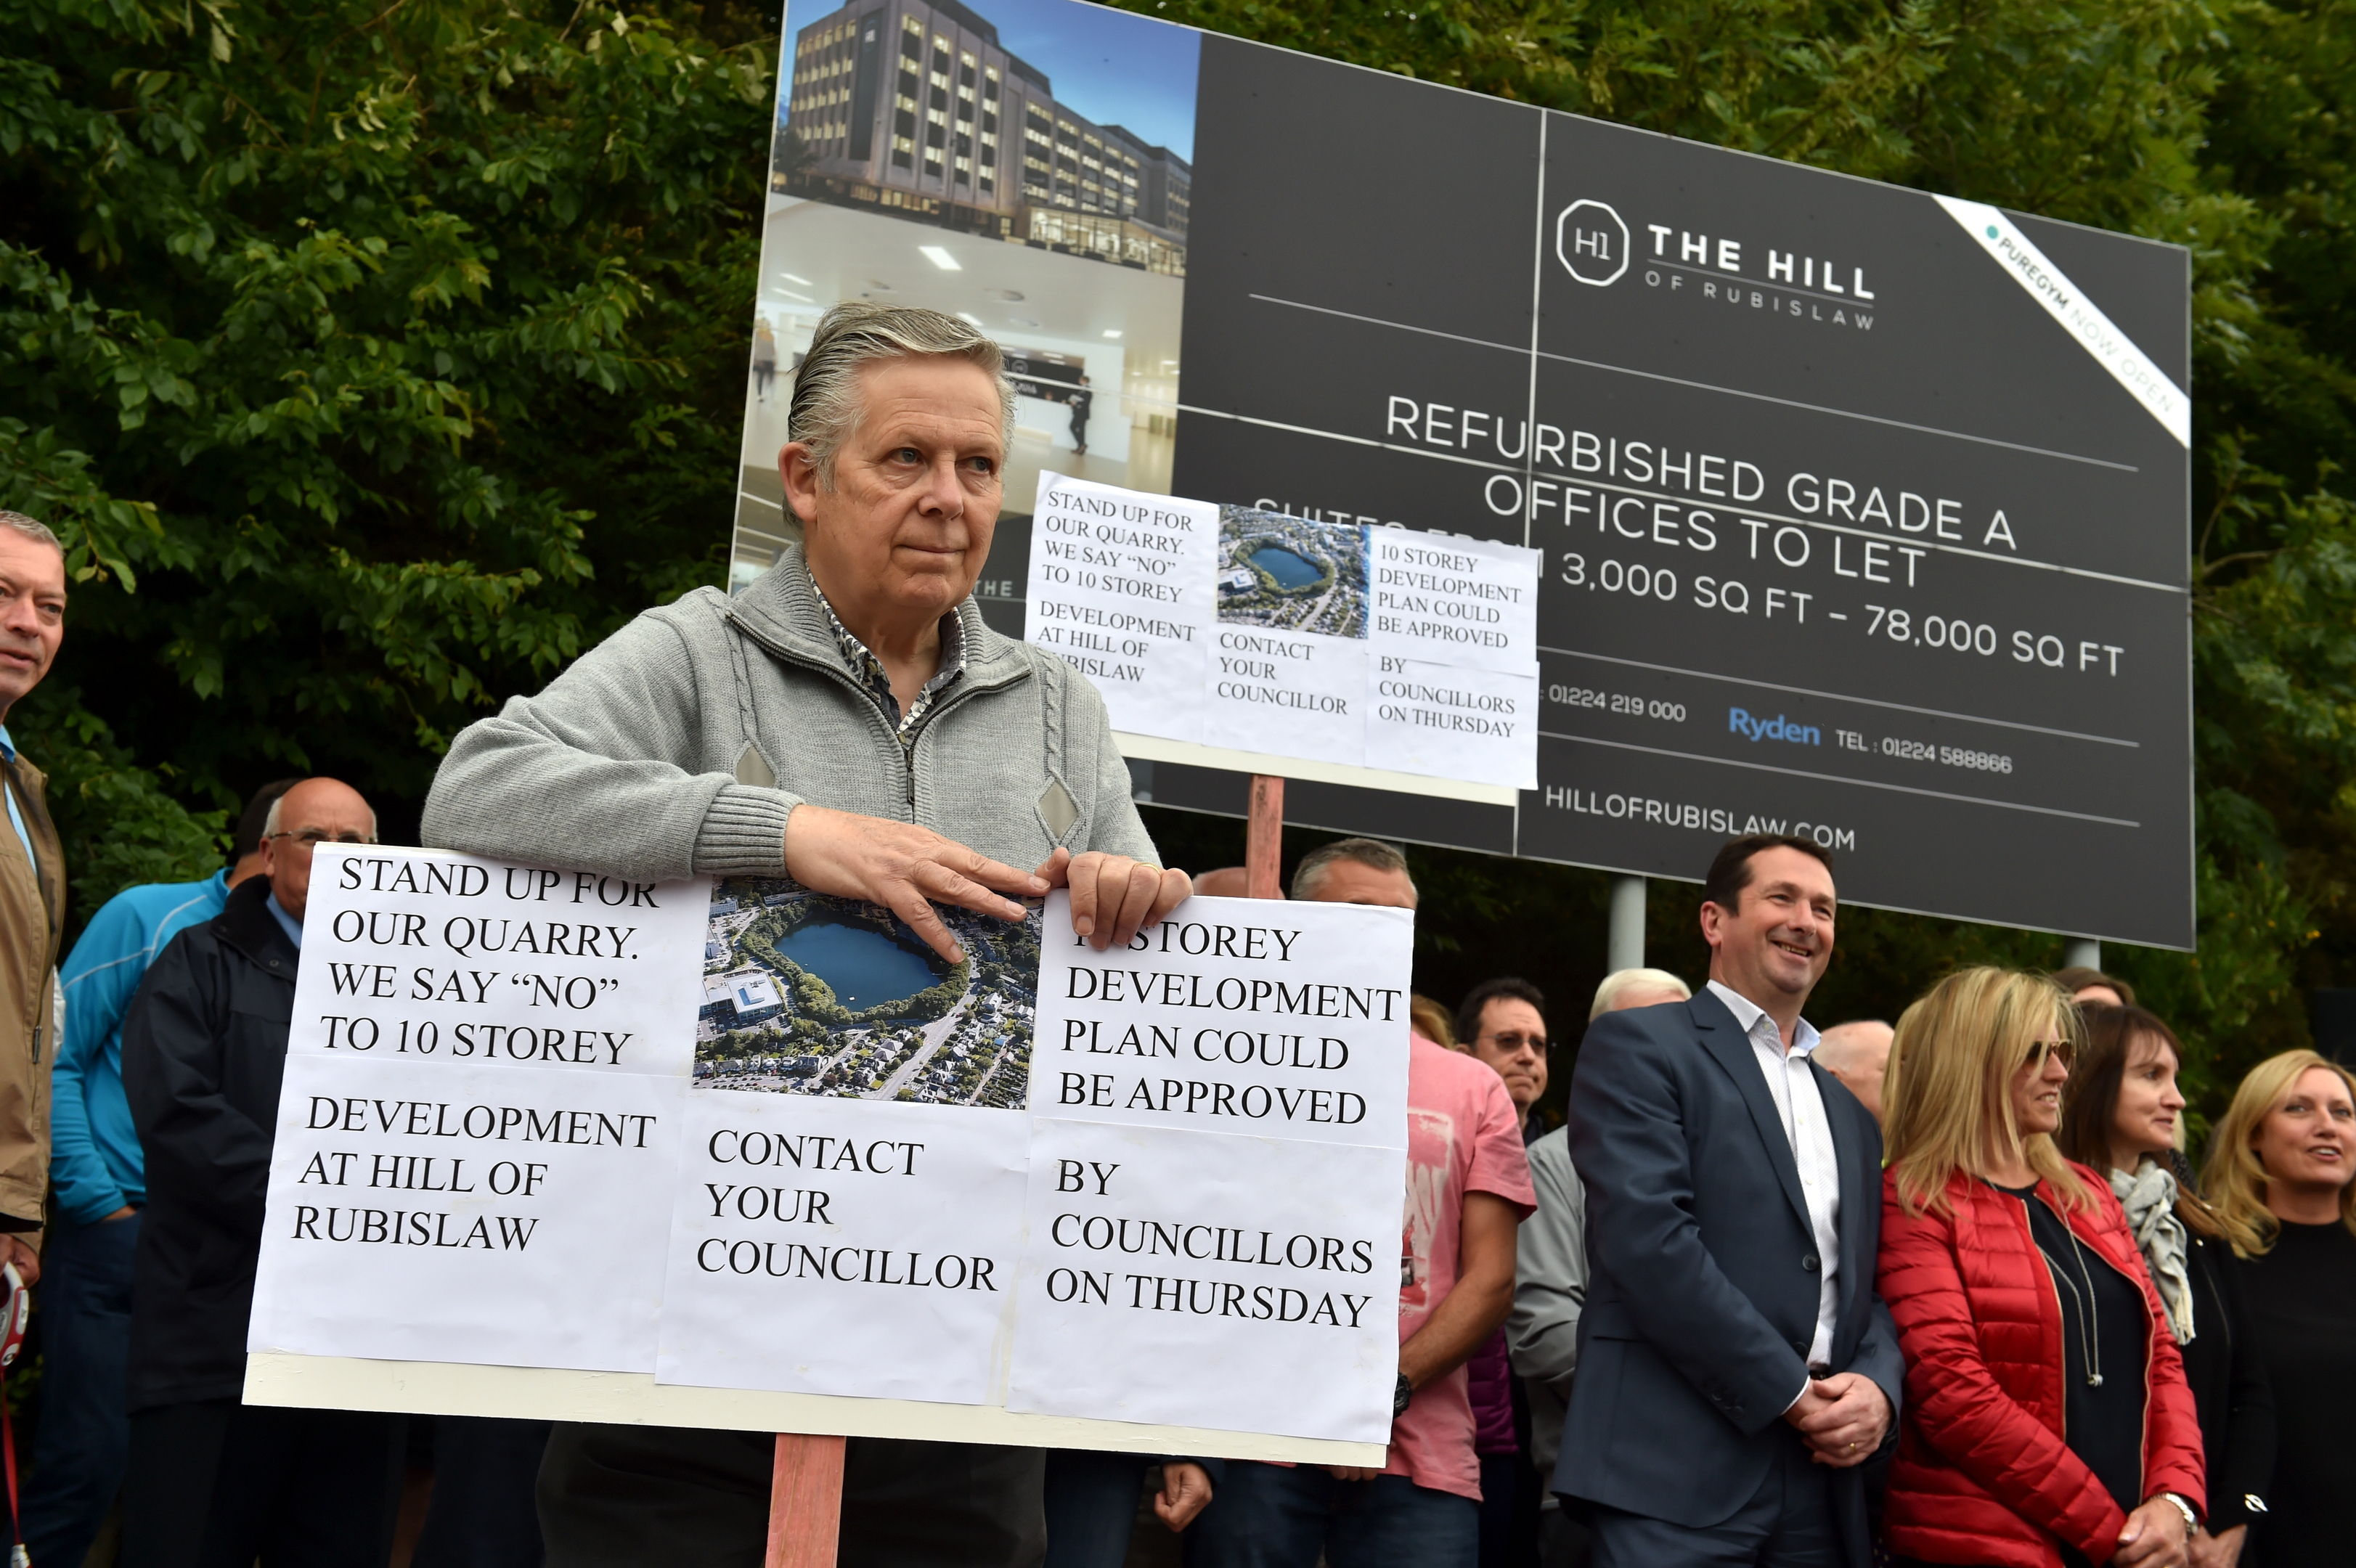 Public demonstration against the submitted plans by Carttera for 299 flats plus parking at Rubislaw Quarry